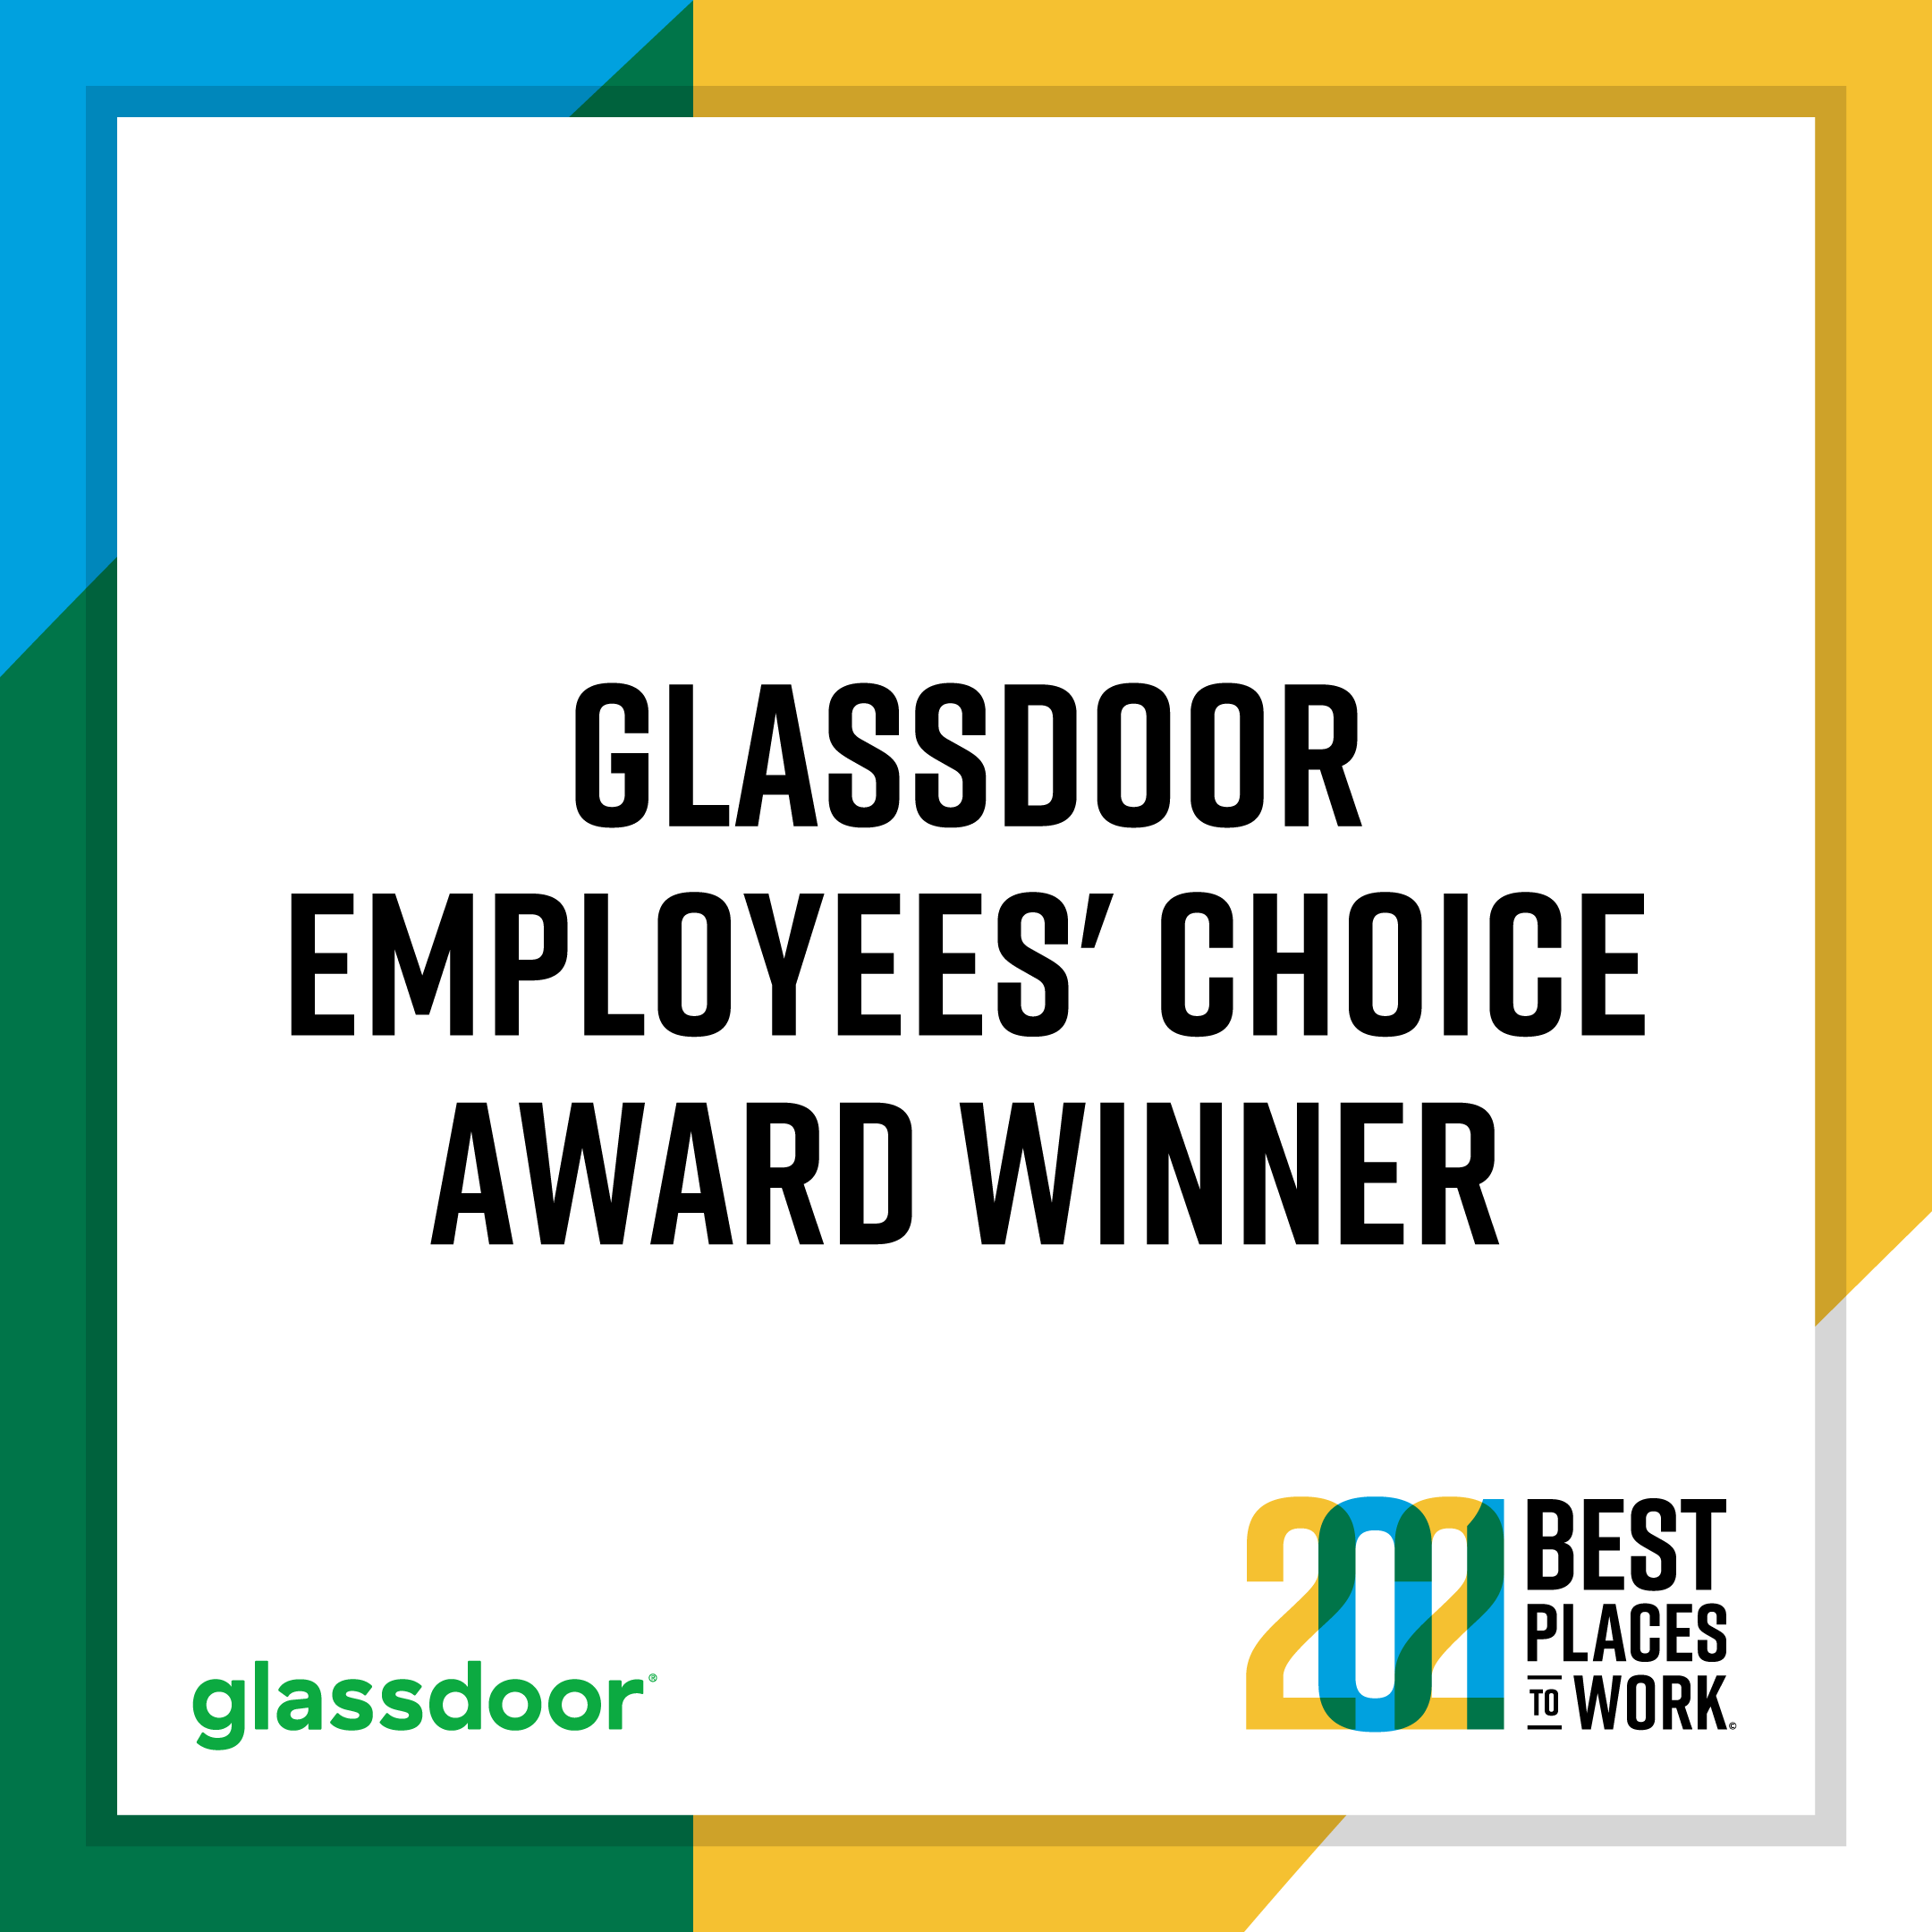 Glassdoor 2021 Best Places to Work Winner - Employees' Choice Award Winner Logo